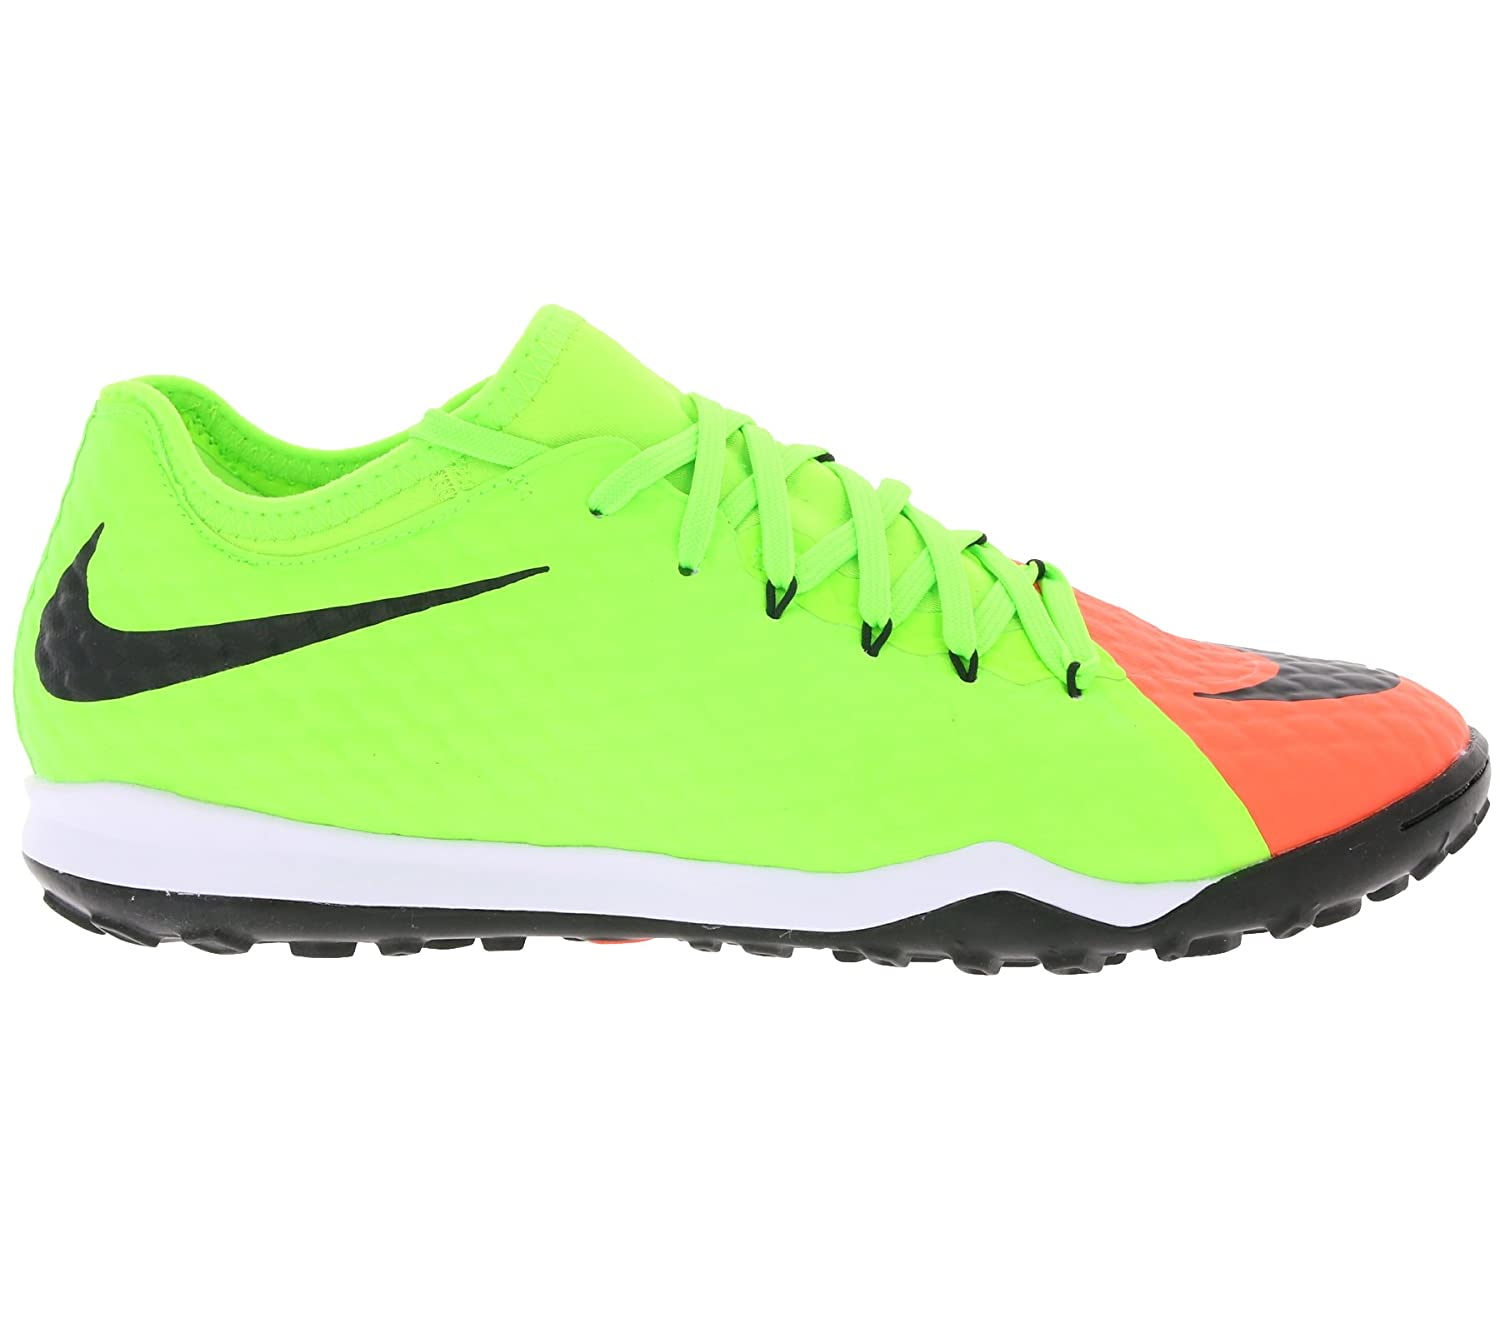 reputable site ca554 e90cc Amazon.com   Nike Hypervenomx Finale II TF Mens Football Boots 852573  Soccer Cleats   Soccer